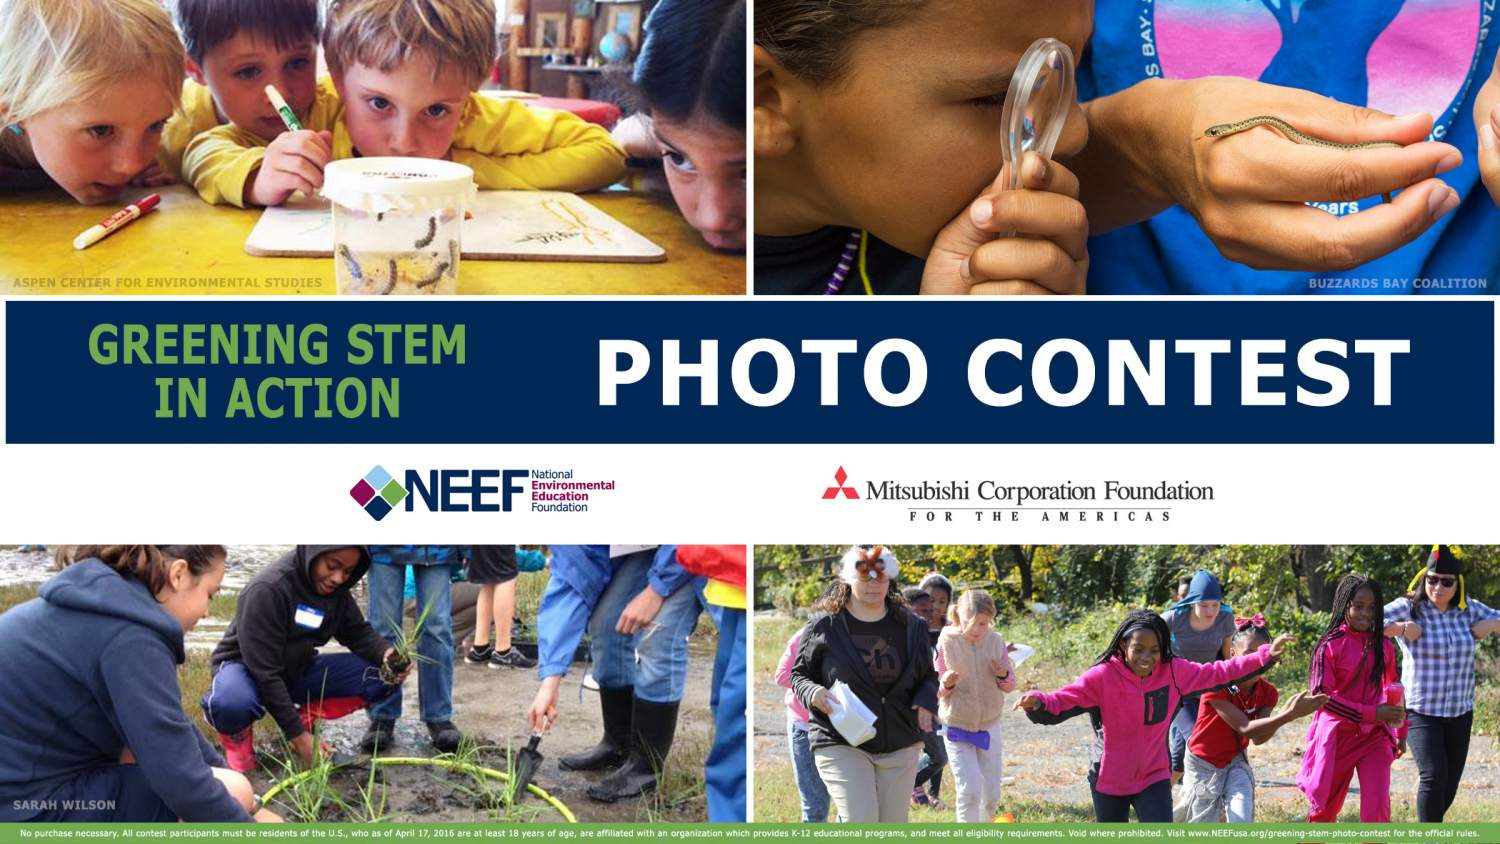 Greening STEM in Action Photo Contest